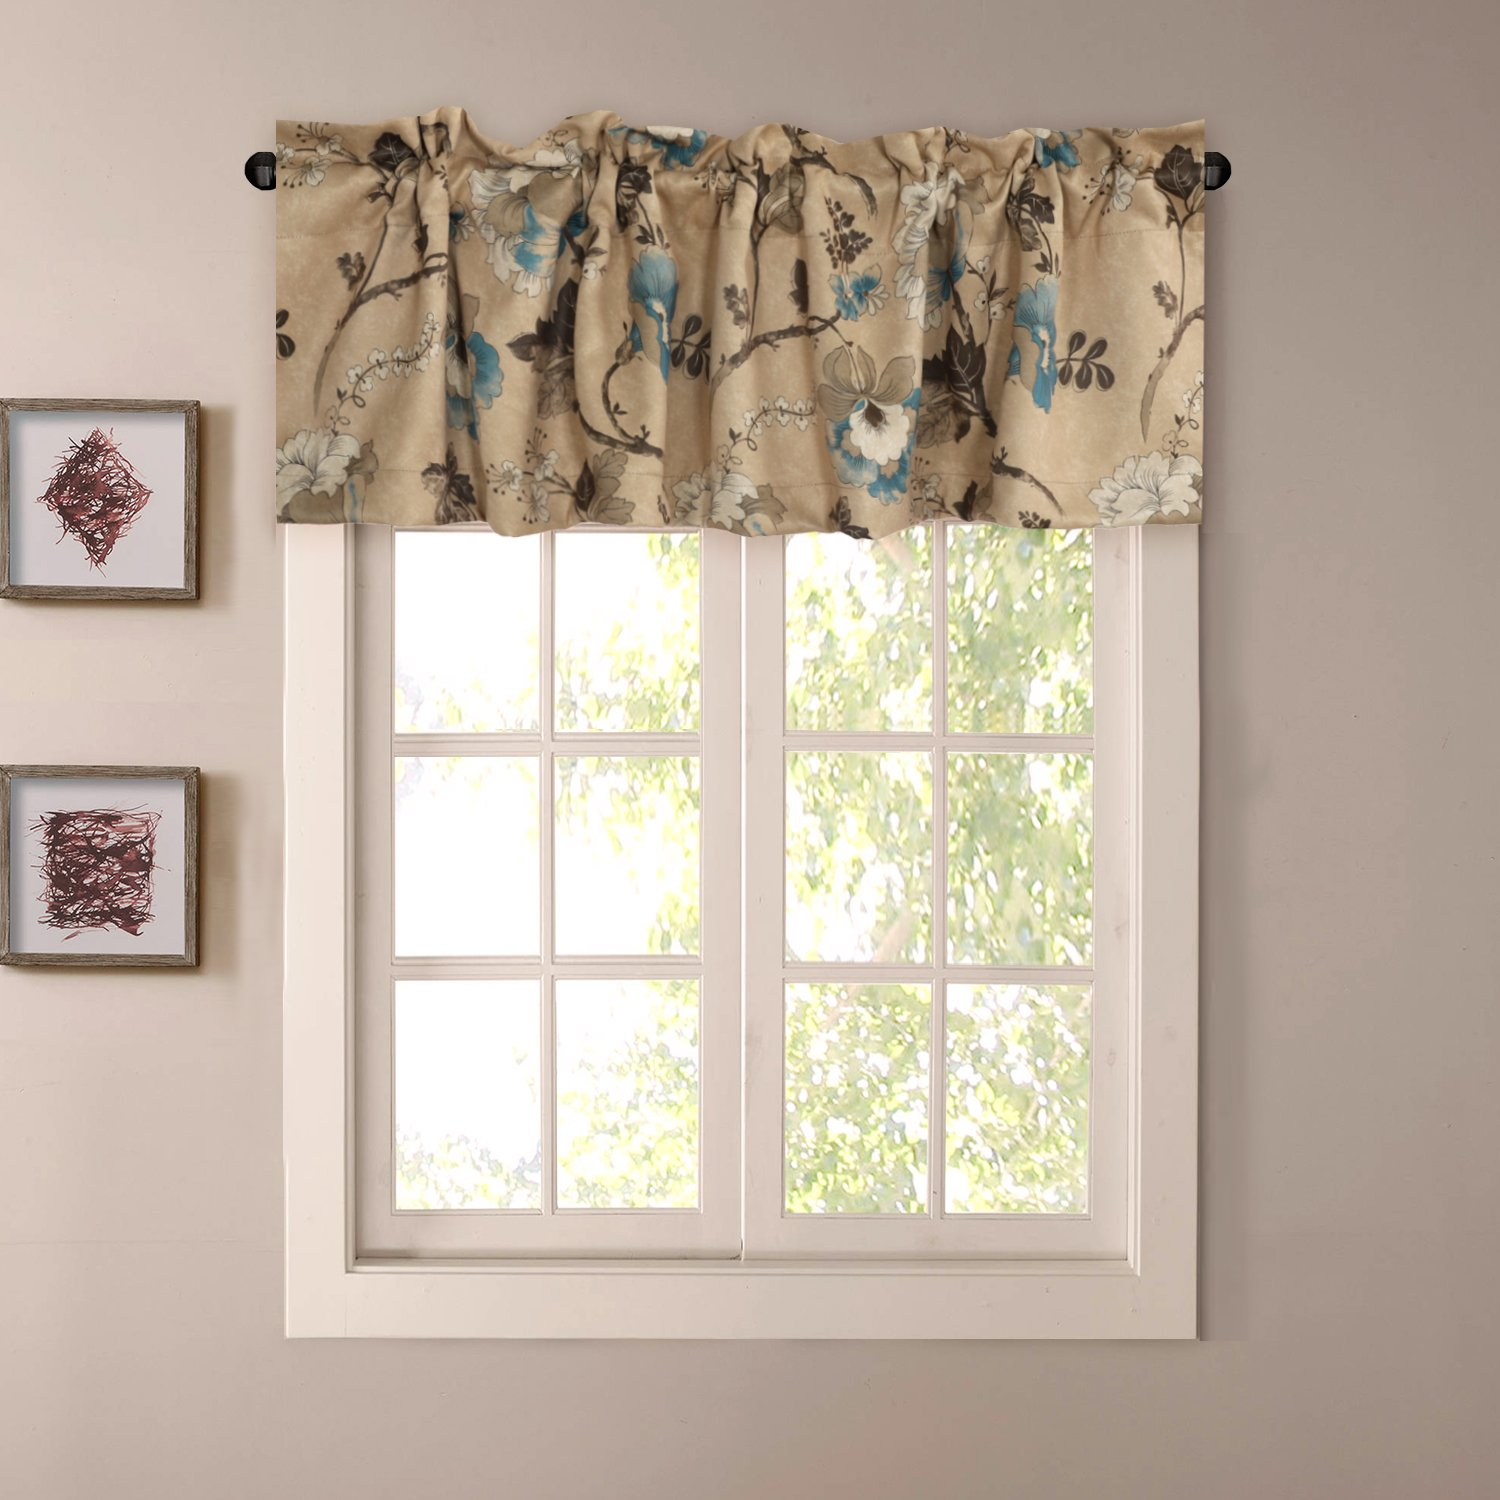 H versailtex window valance rustic style ultra soft material suits for kitchen bath laundry bedroom living room rod pocket 58 by 15 inch vintage floral